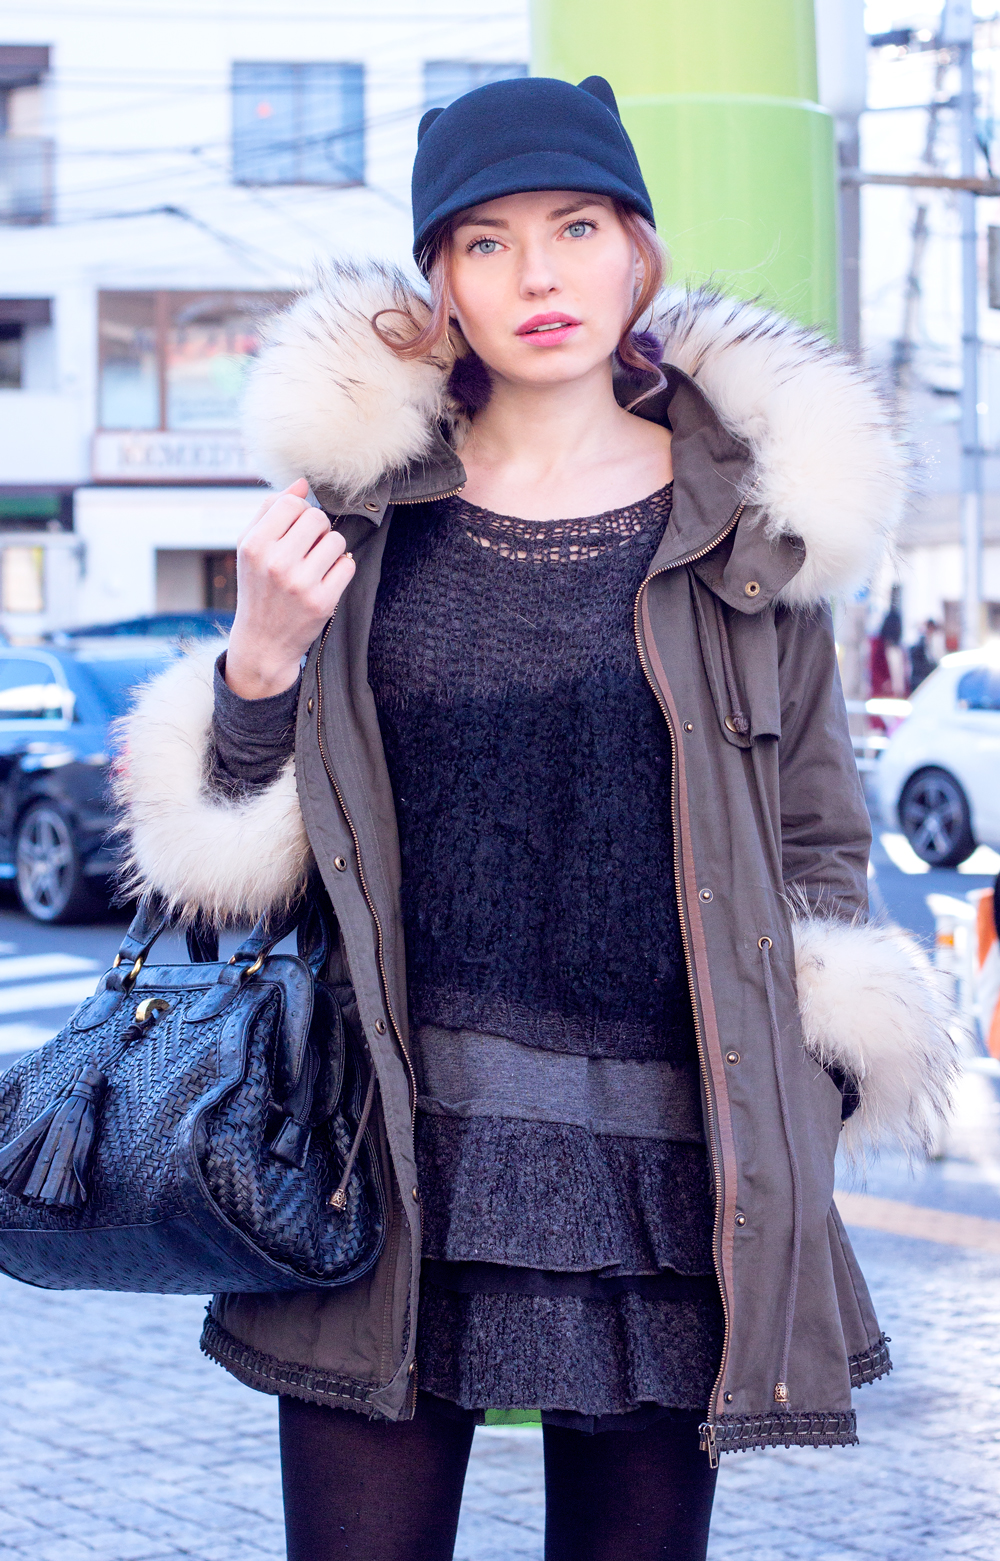 Daikanyama, tokyo, japan, tokyo fashion, cat hat anorak, fur, japanese brands, knits, vintage, knee high boots